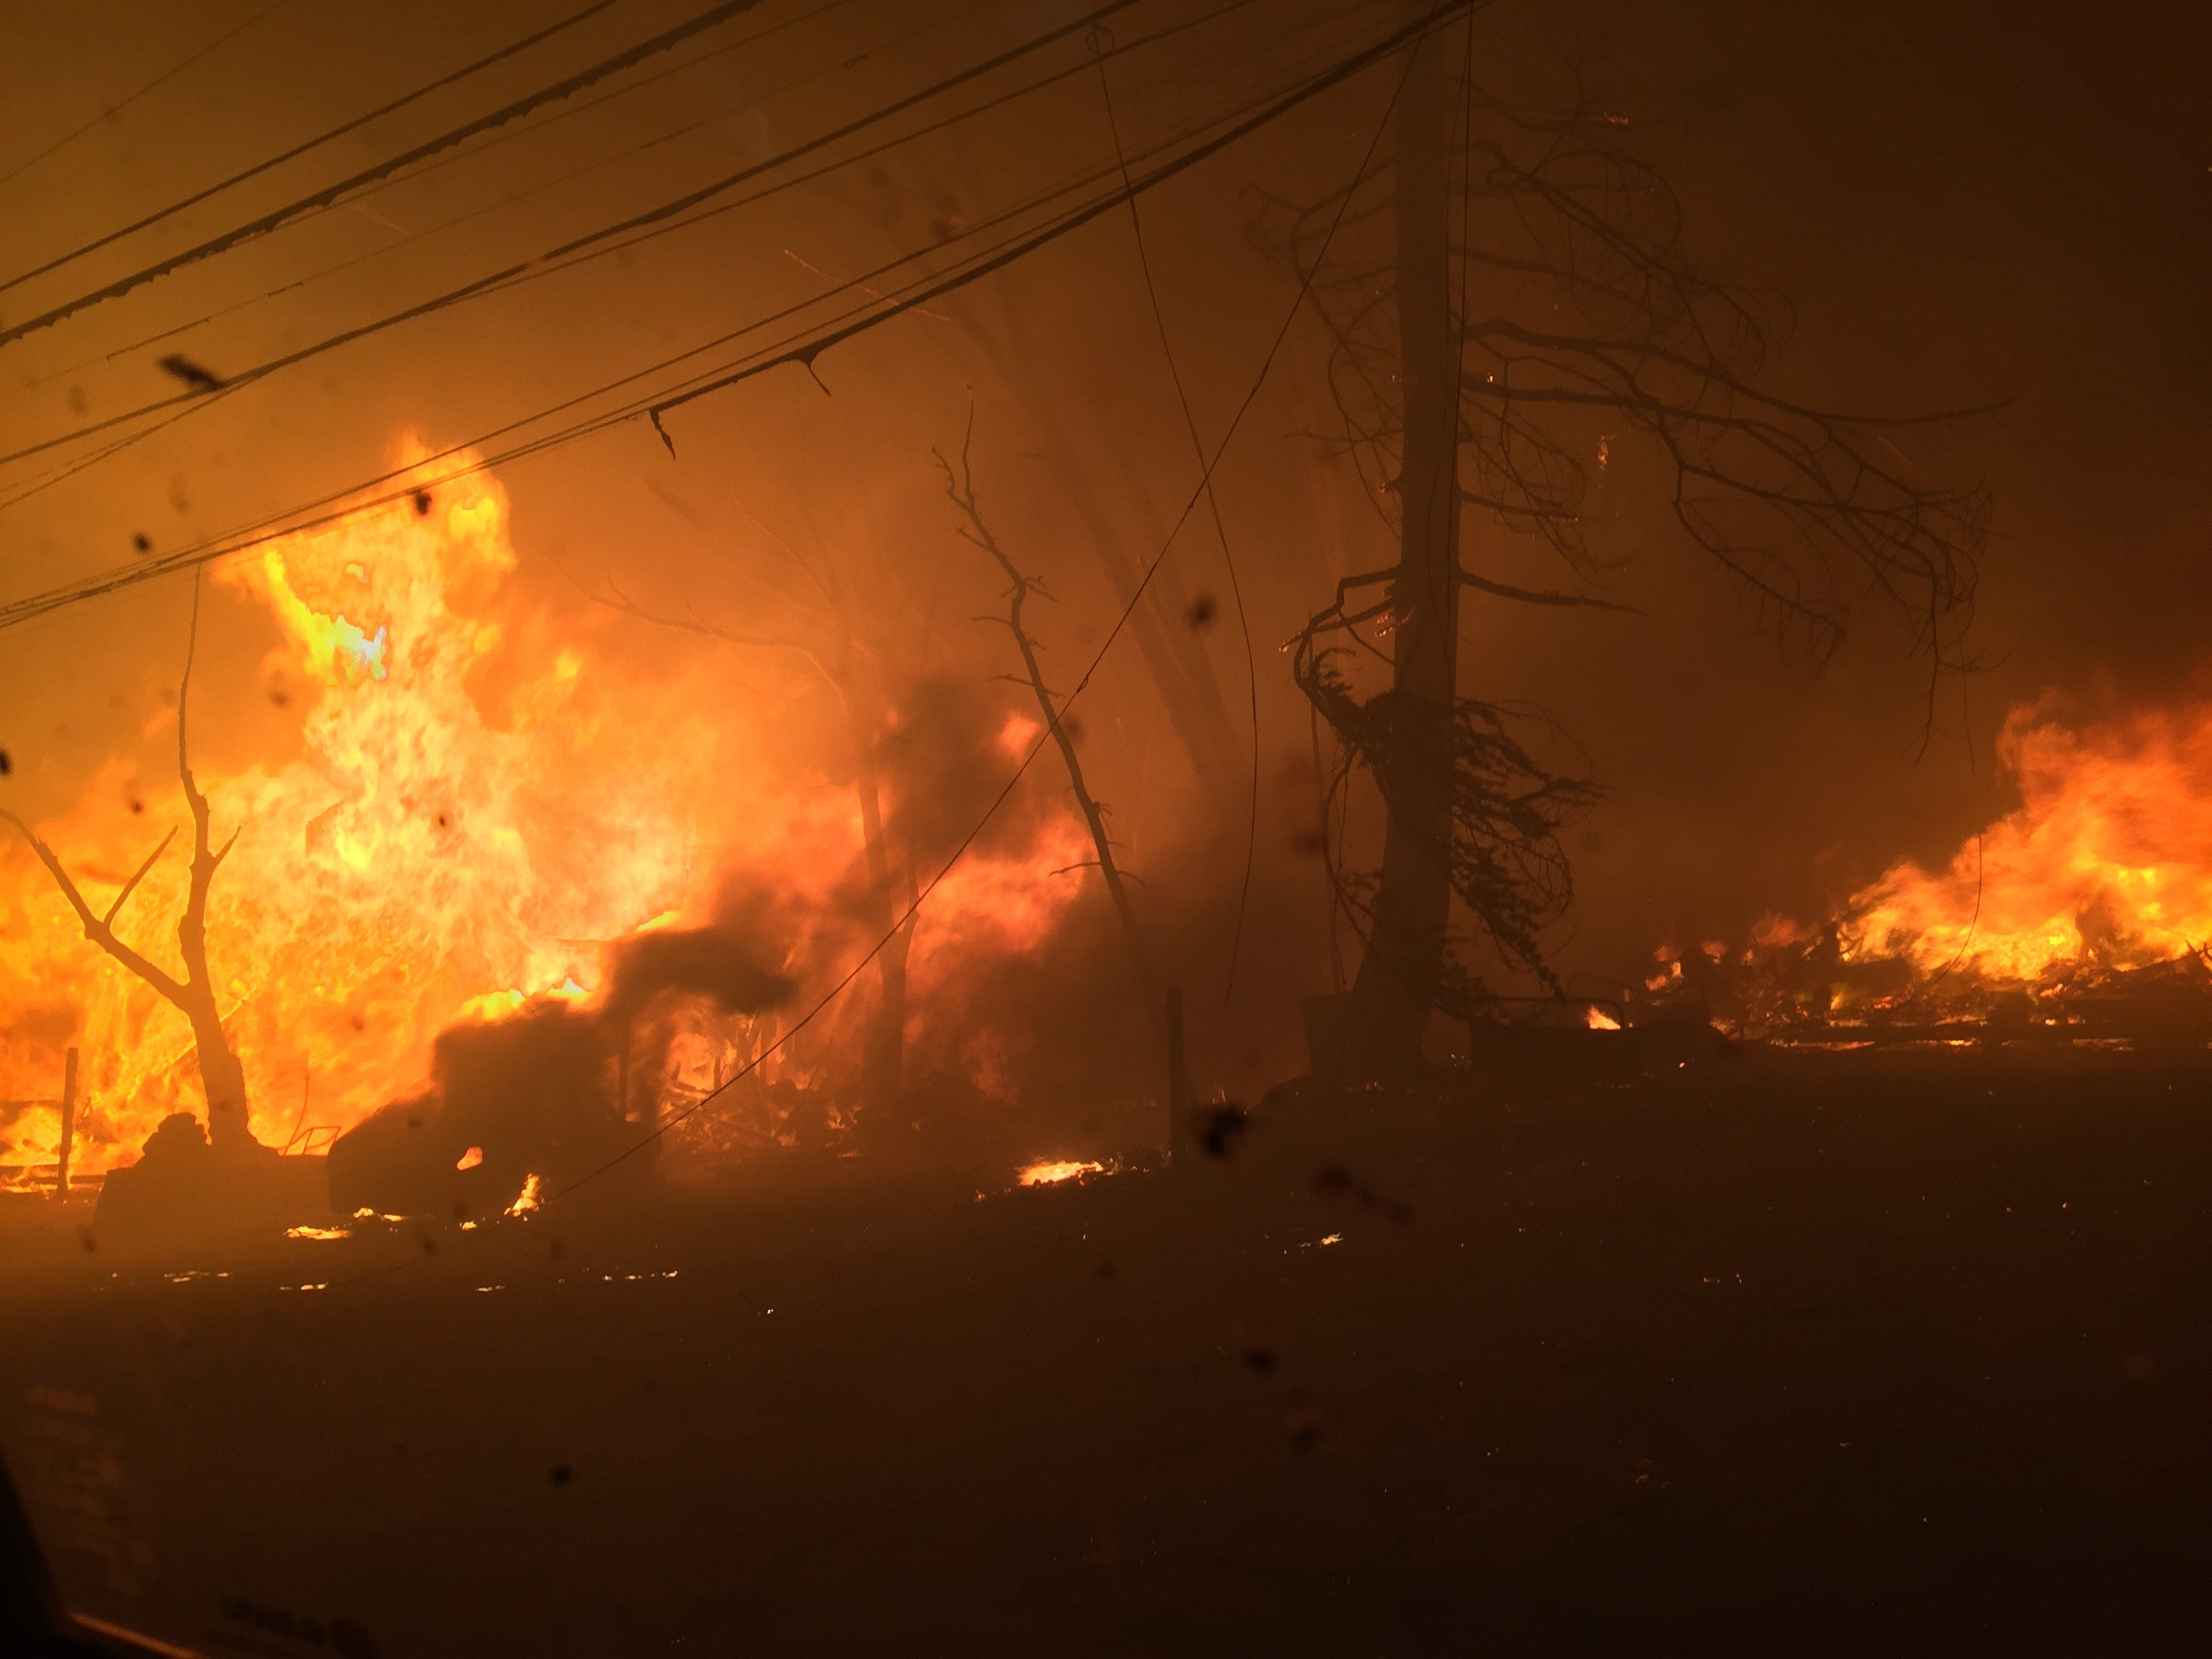 Fire consumed trees and buildings all along the route as residents evacuated Paradise during the Camp Fire.